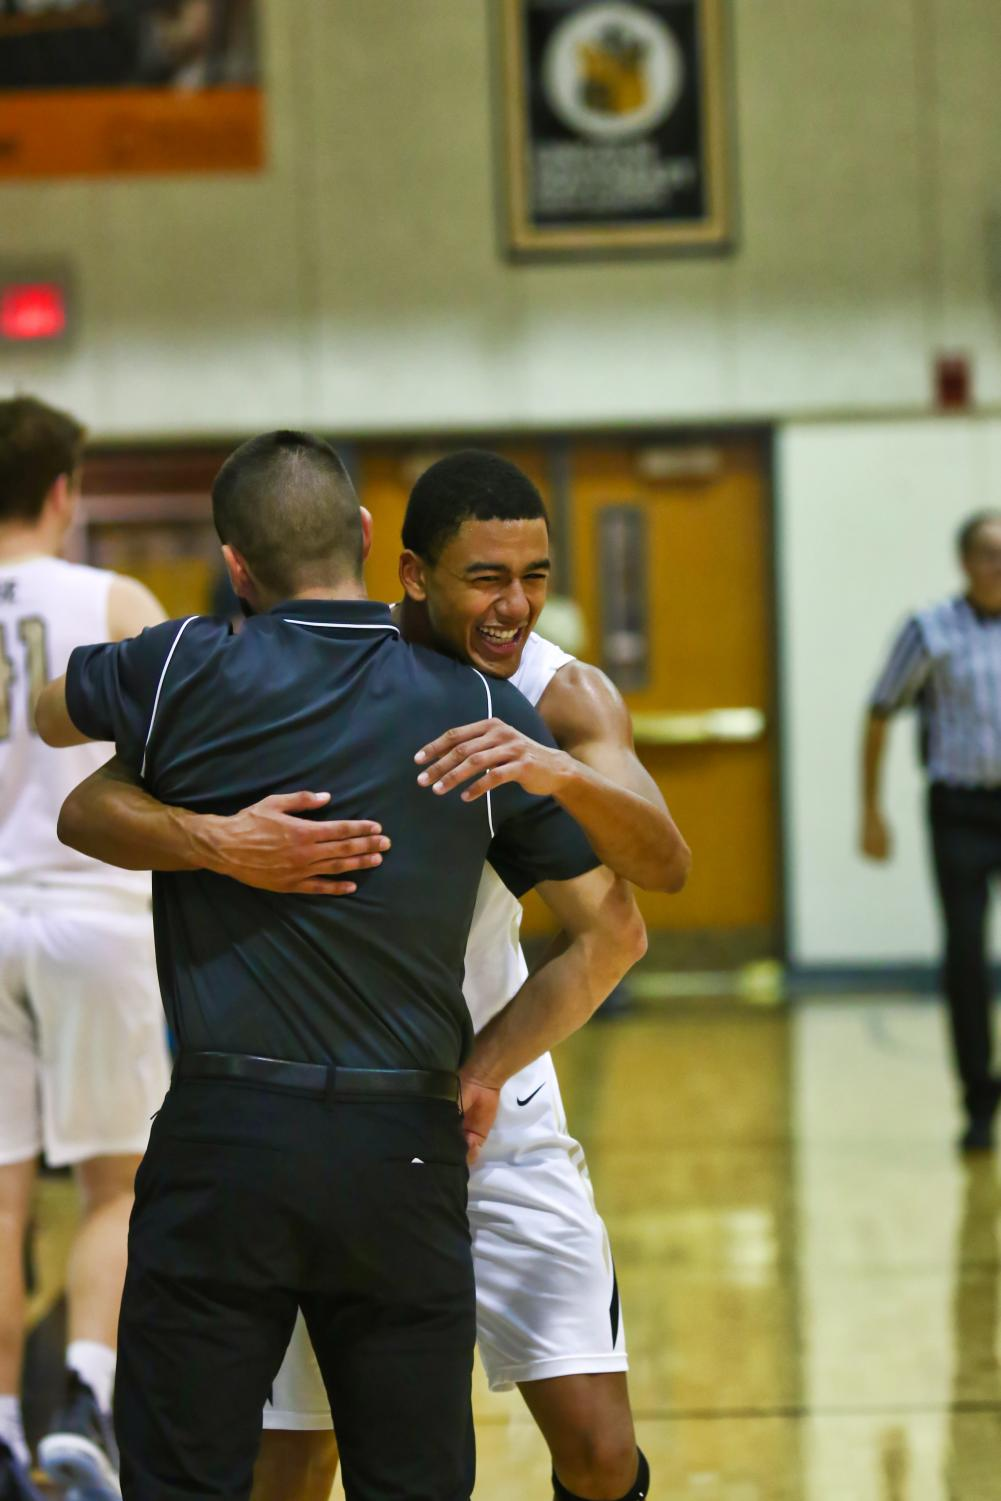 Senior Michael Anderson celebrates with Southeast Head Coach Jonah Bradley at the game against Bellevue West on Saturday Dec. 8.